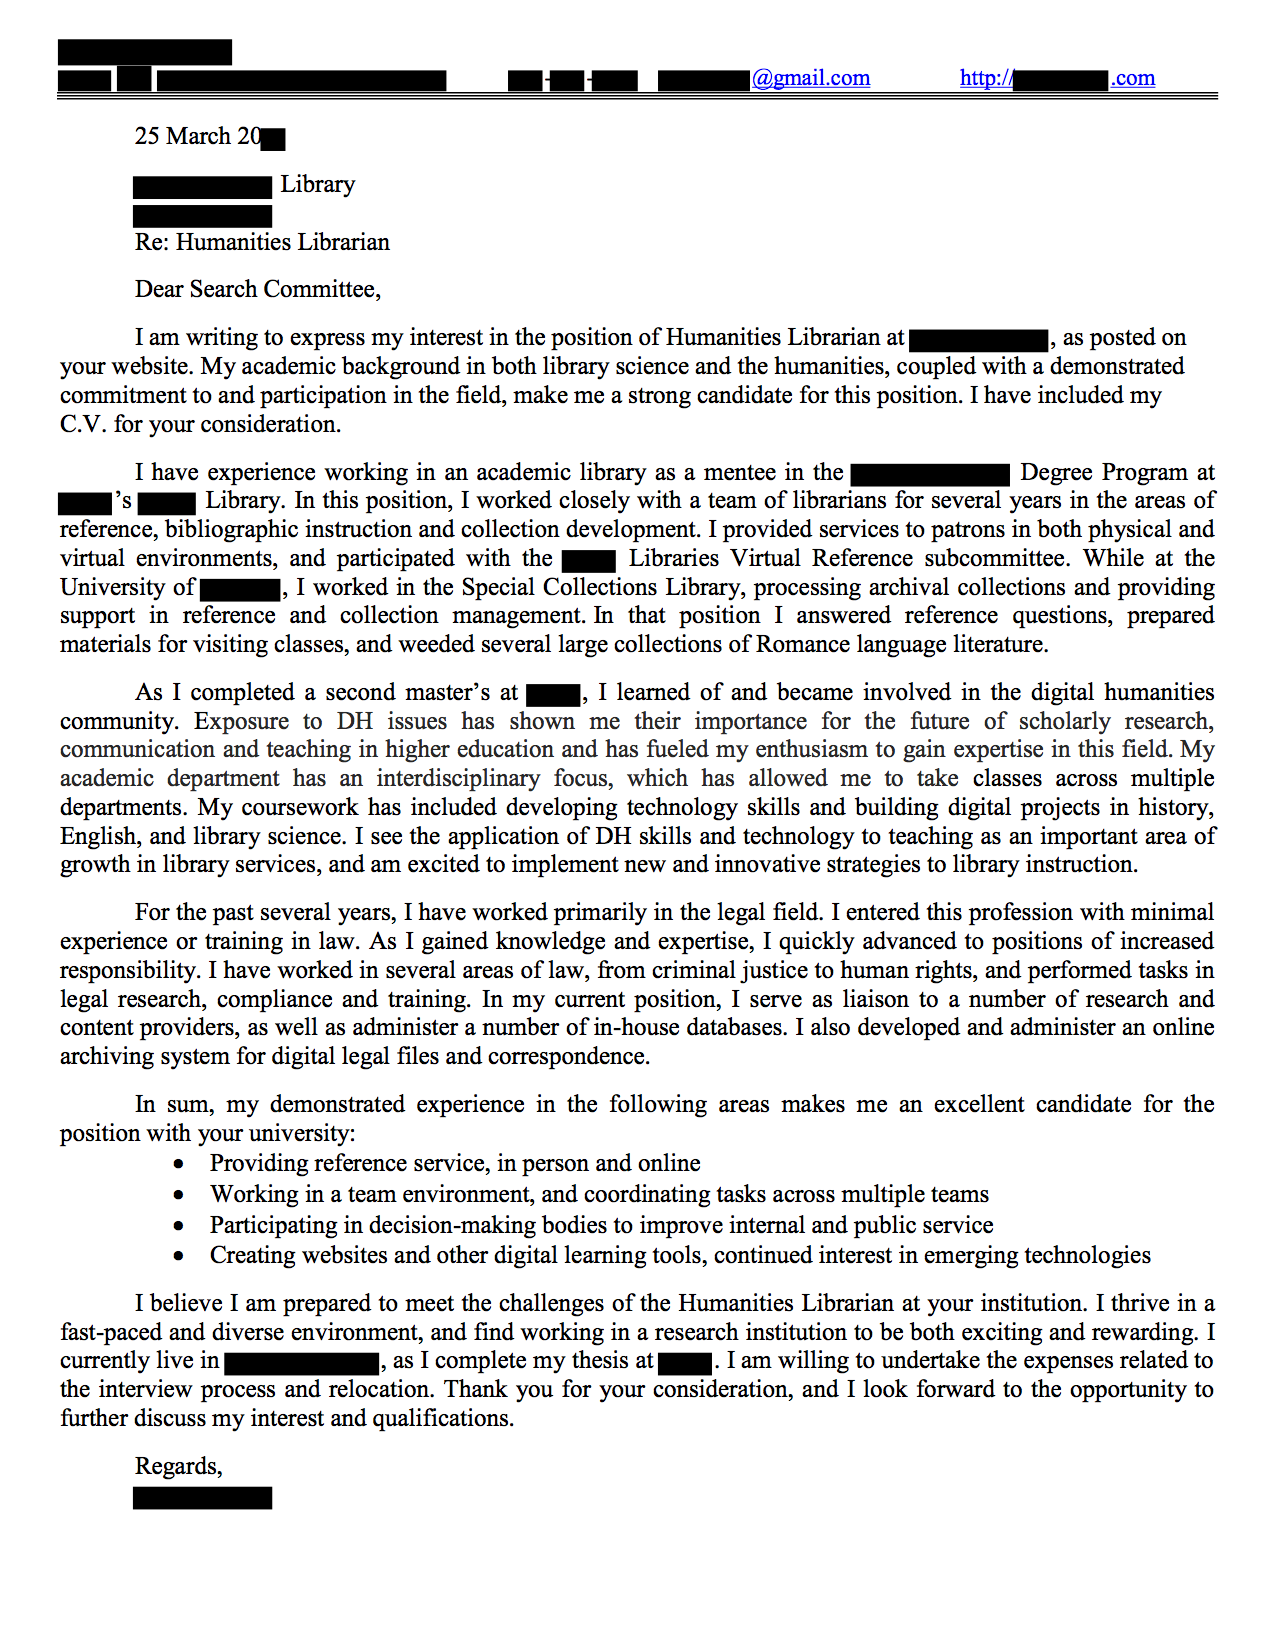 humanities librarian cover letter